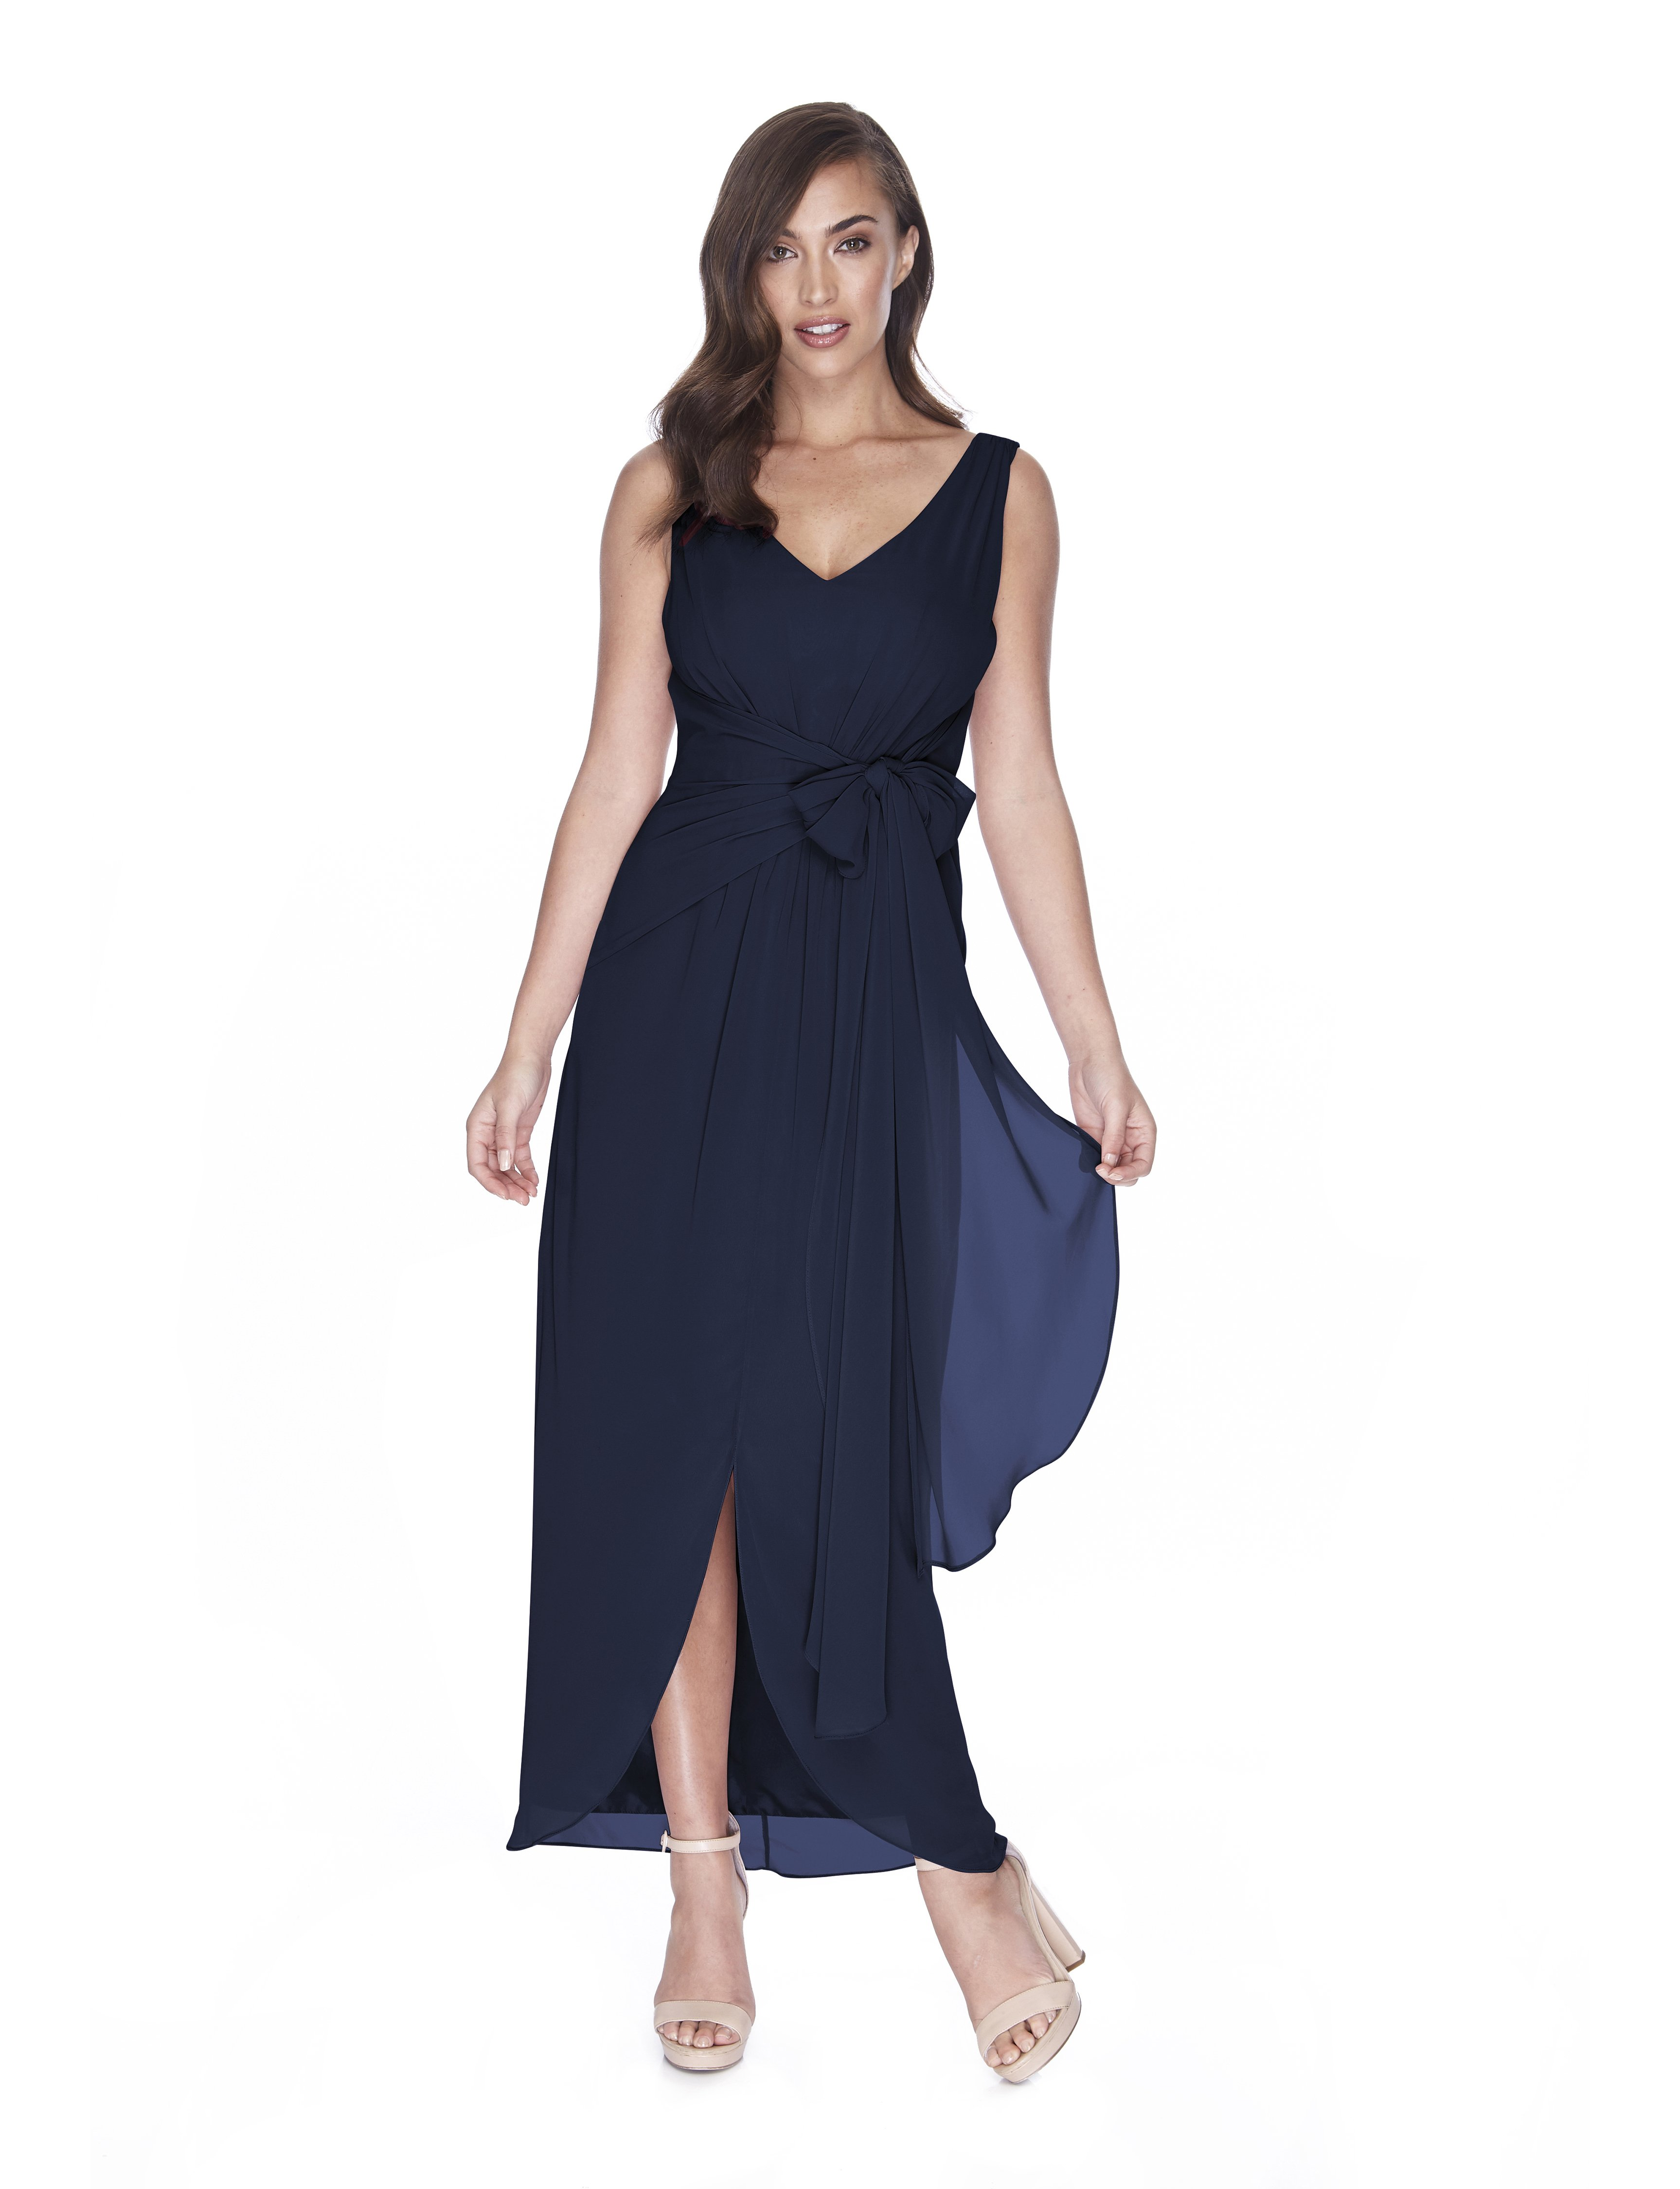 Try Before You Buy Bridesmaids Dress Ella in Navy